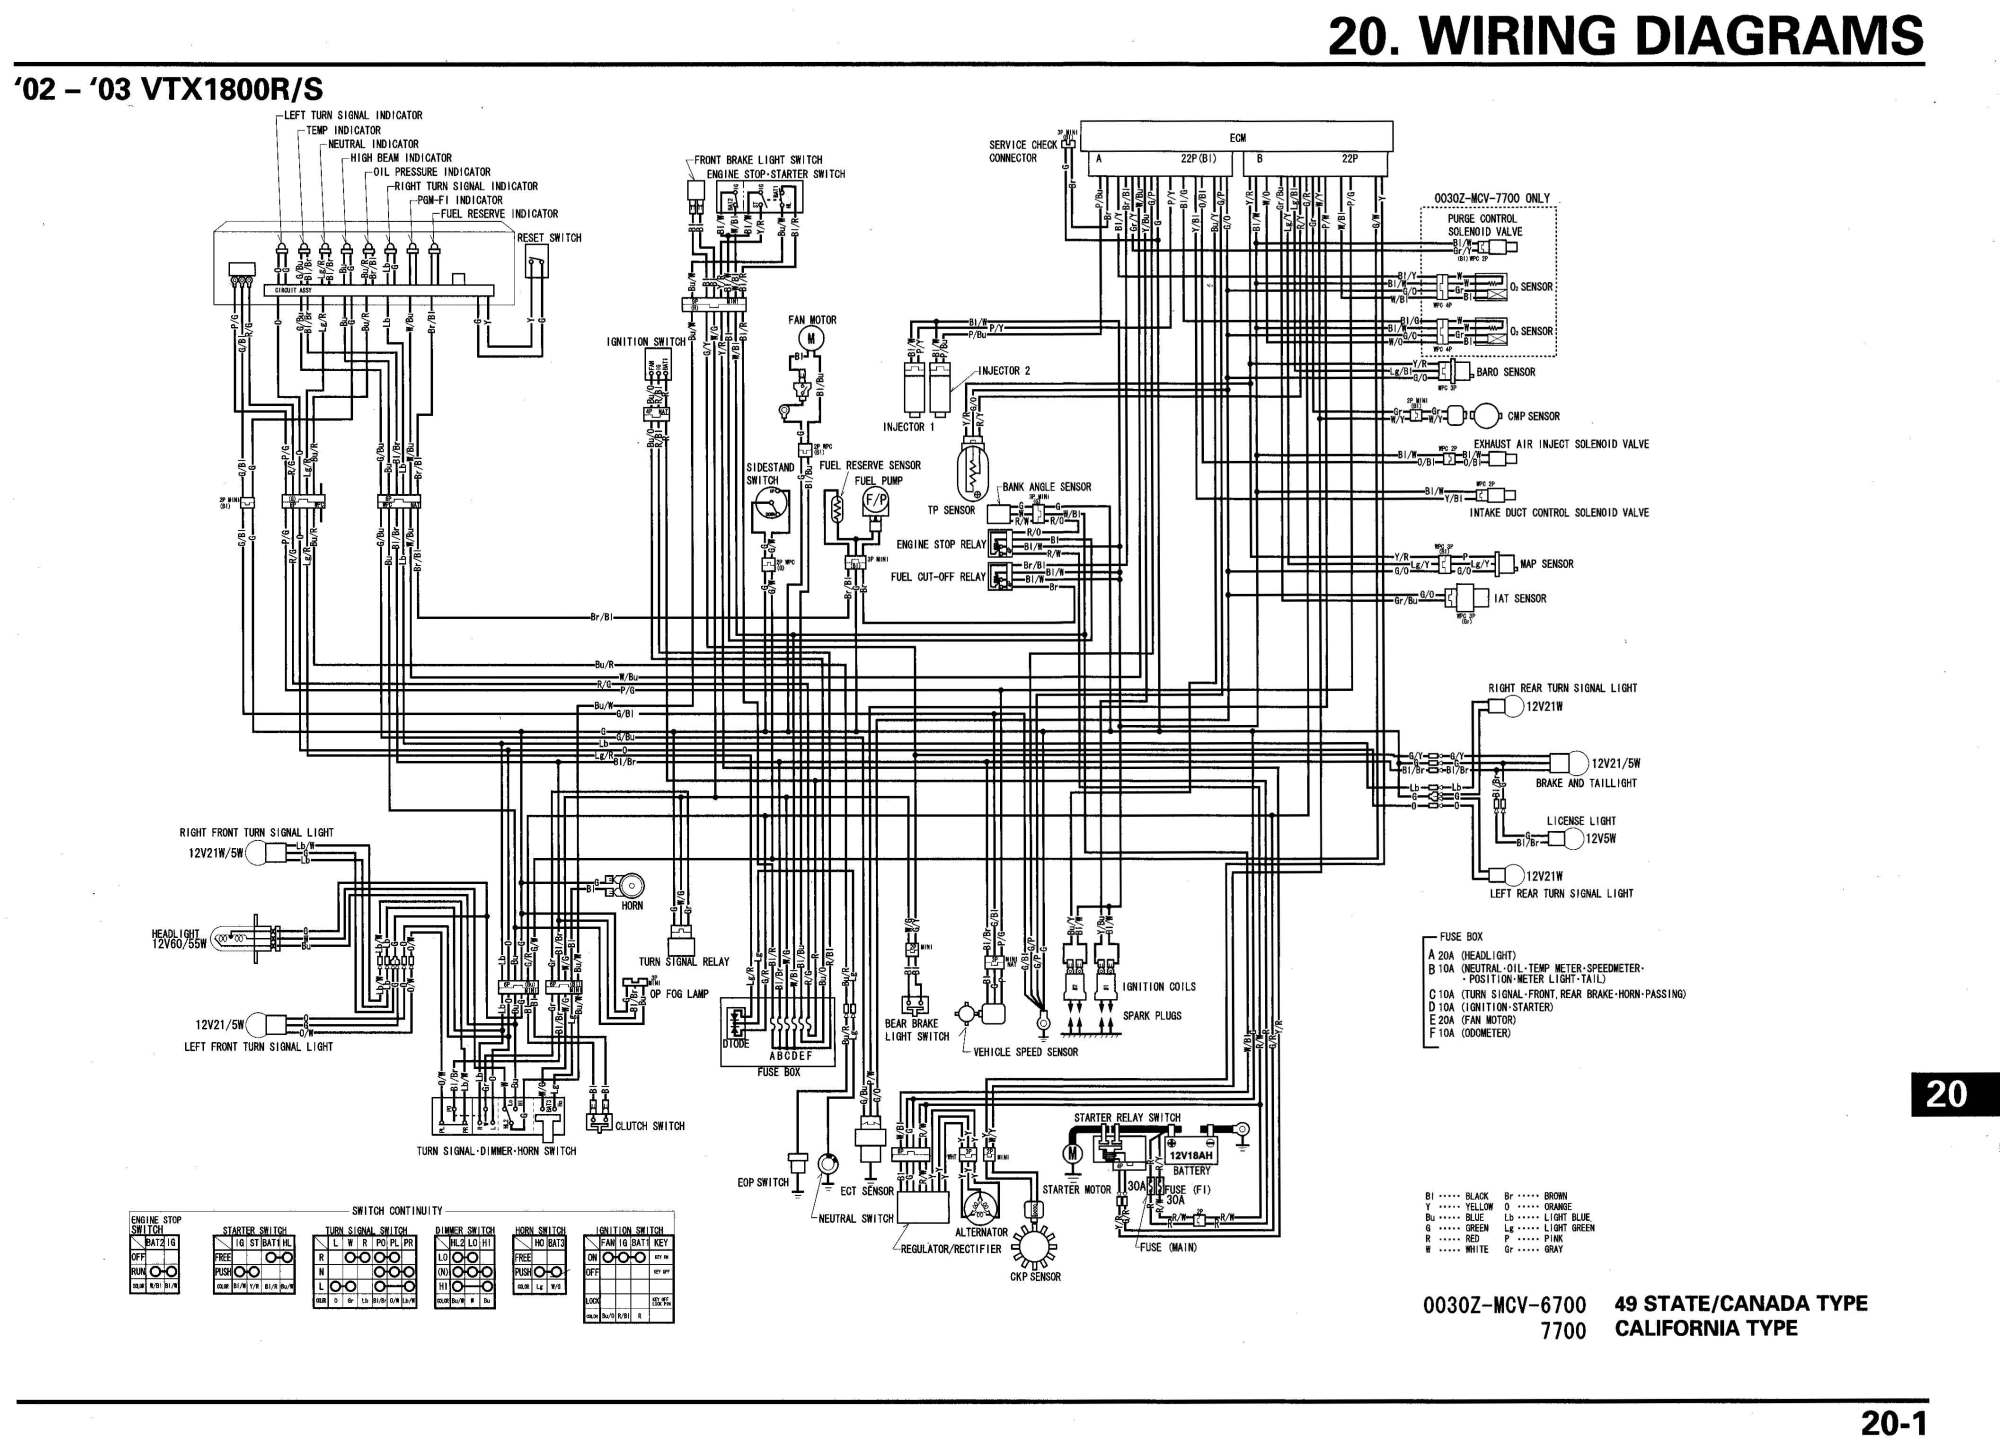 hight resolution of 02 03 vtx 1800r s schematic